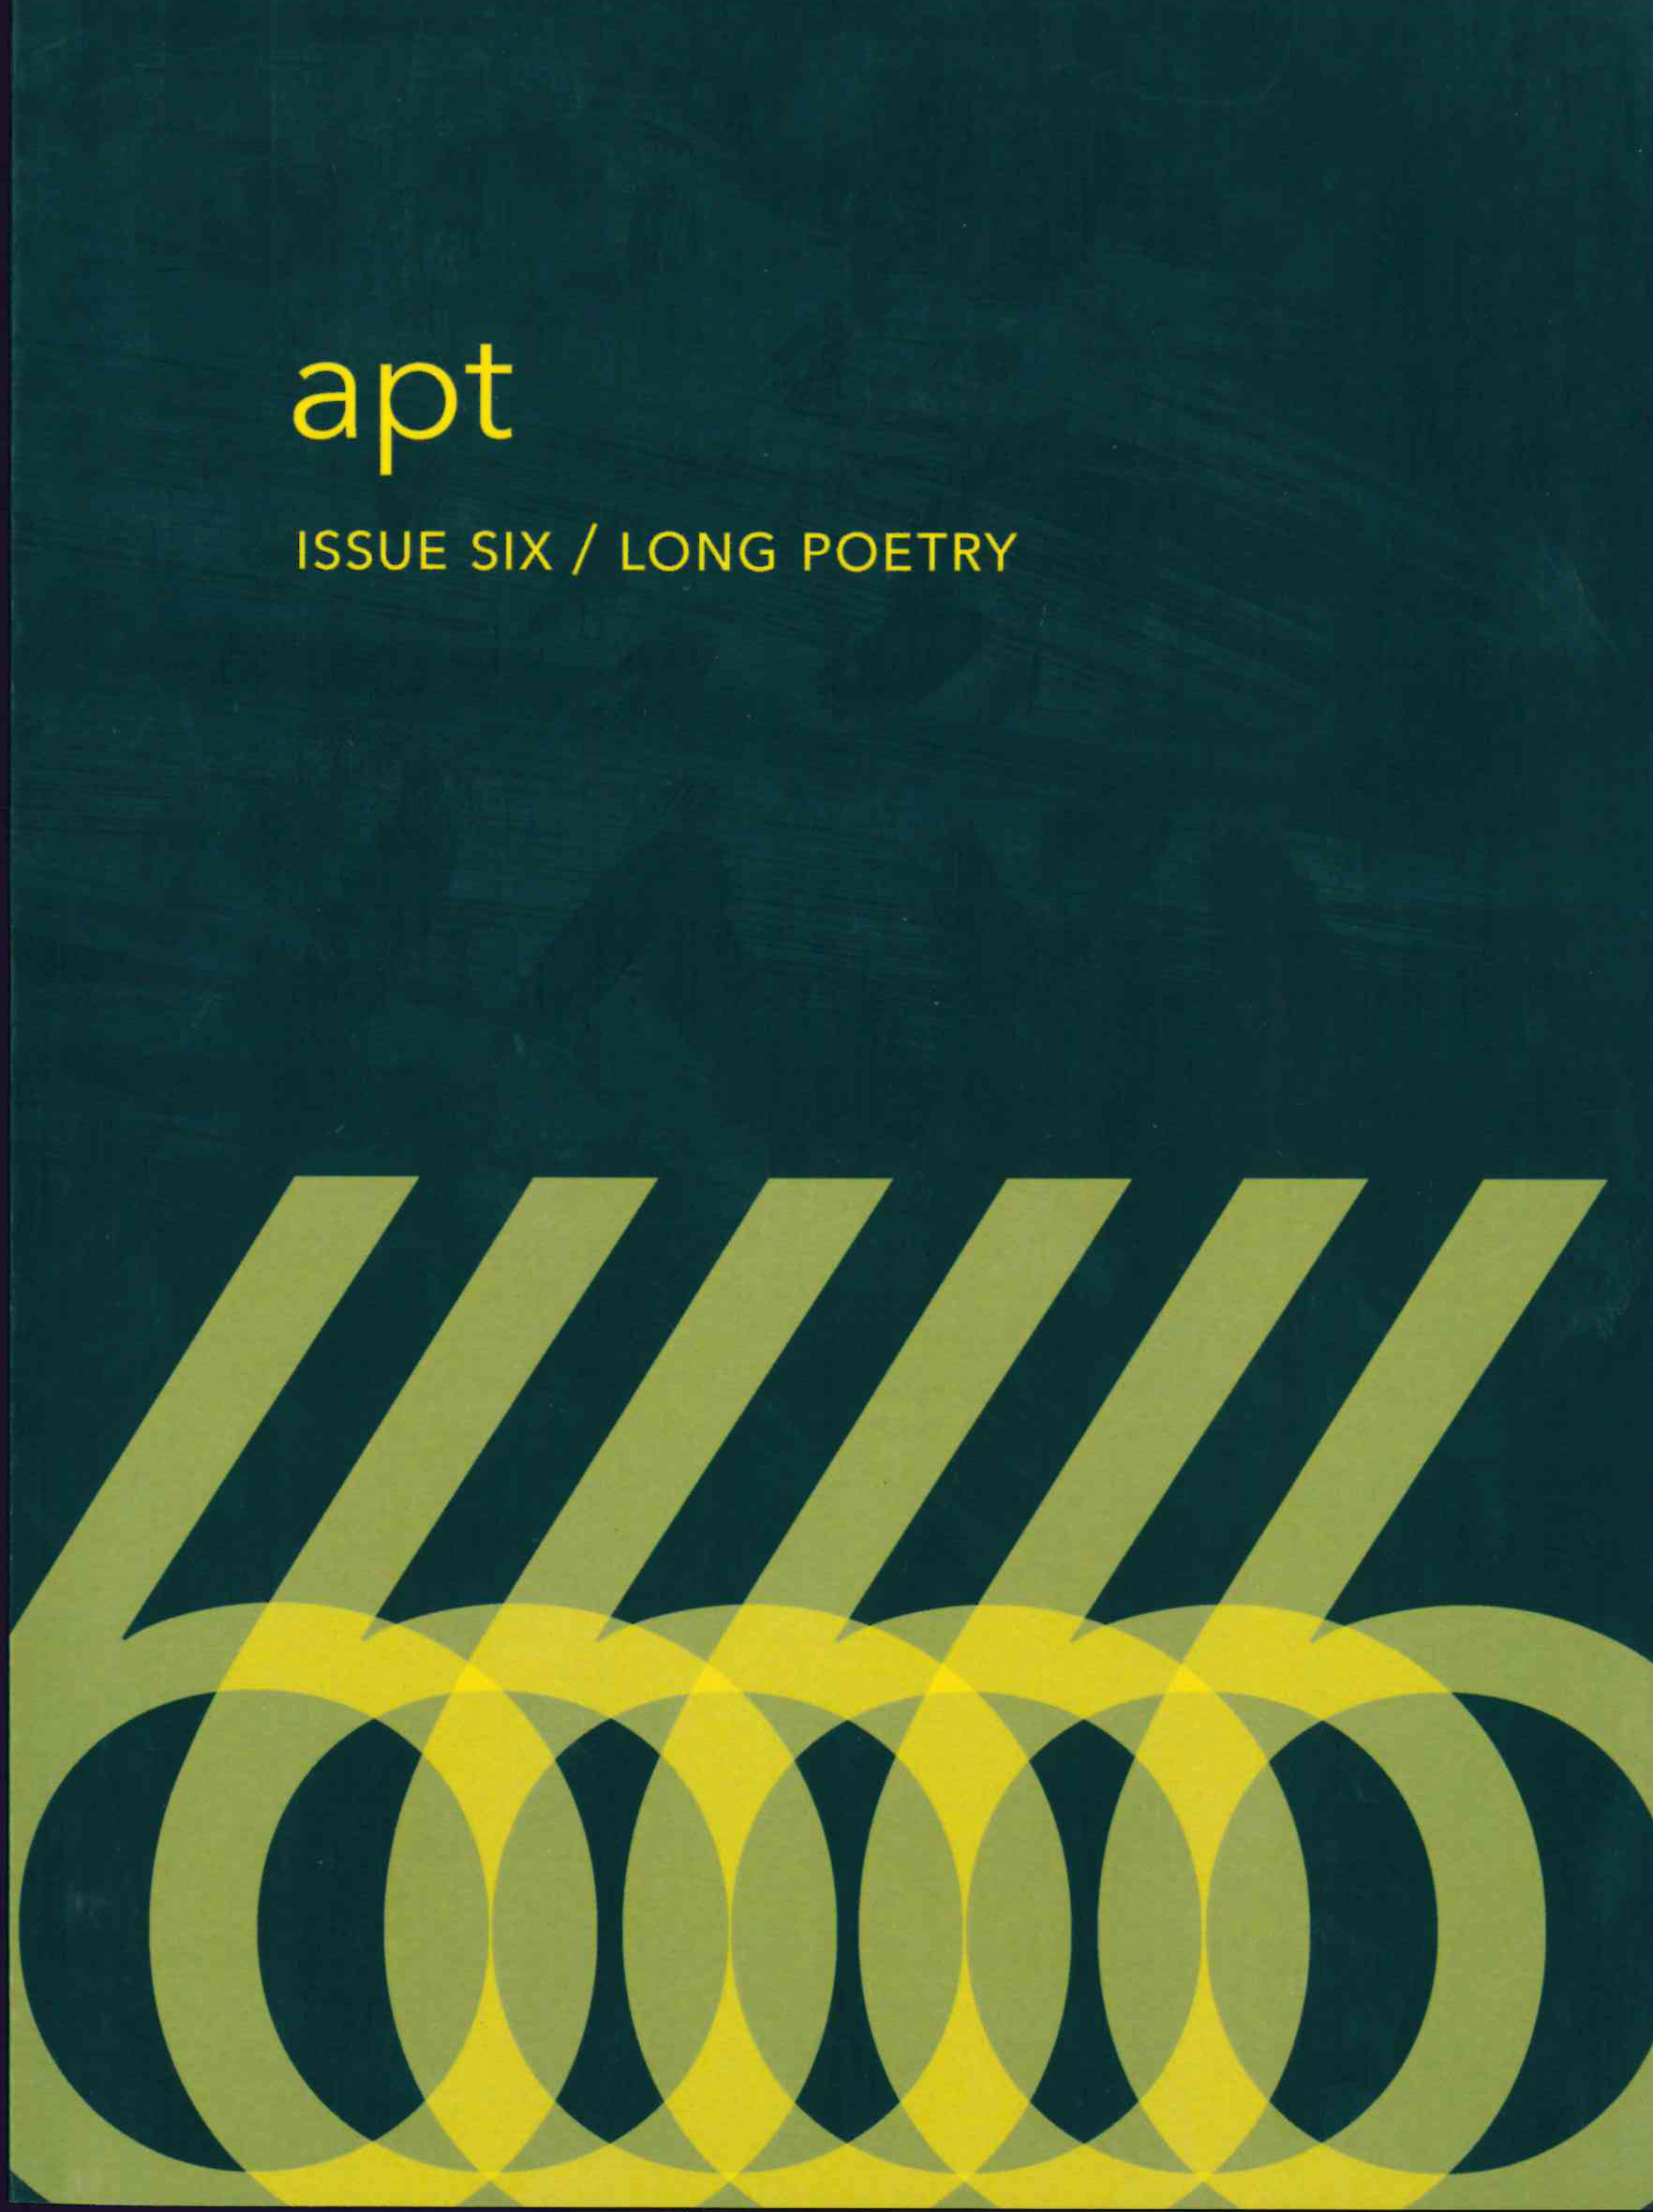 apt: issue six